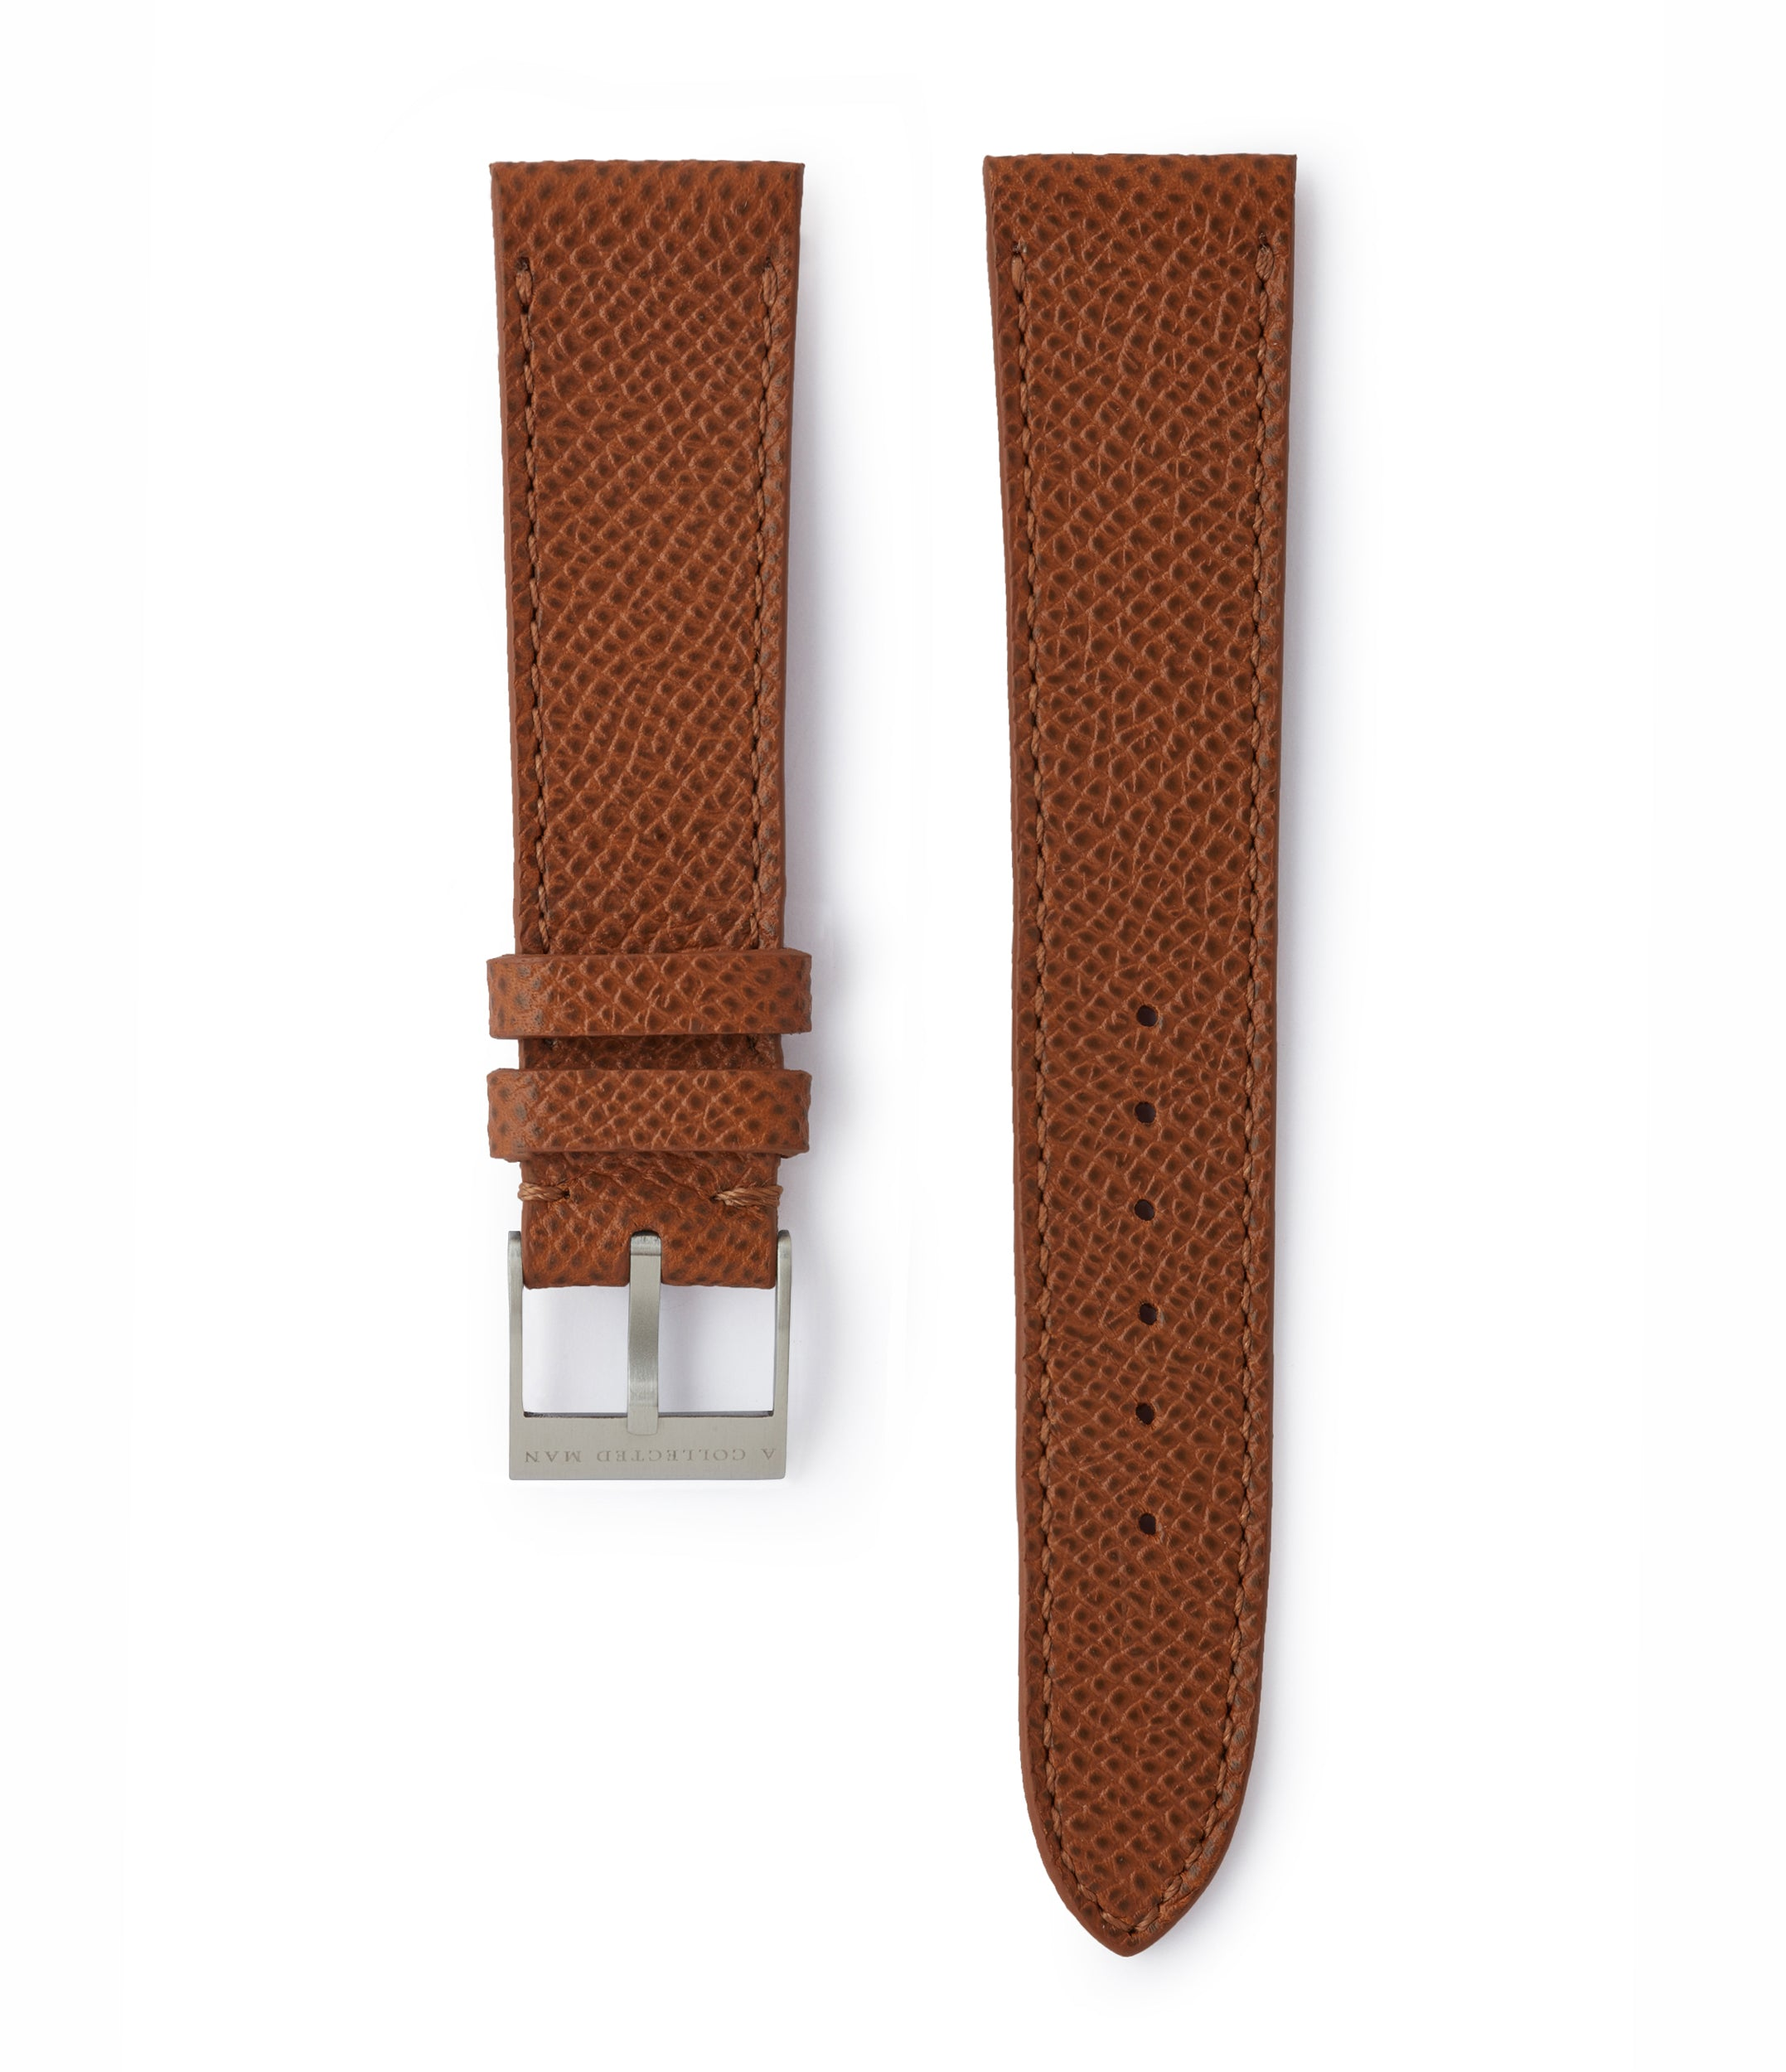 buy tan saffiano leather watch strap 18mm Marrakesh JPM for sale order online at A Collected Man London